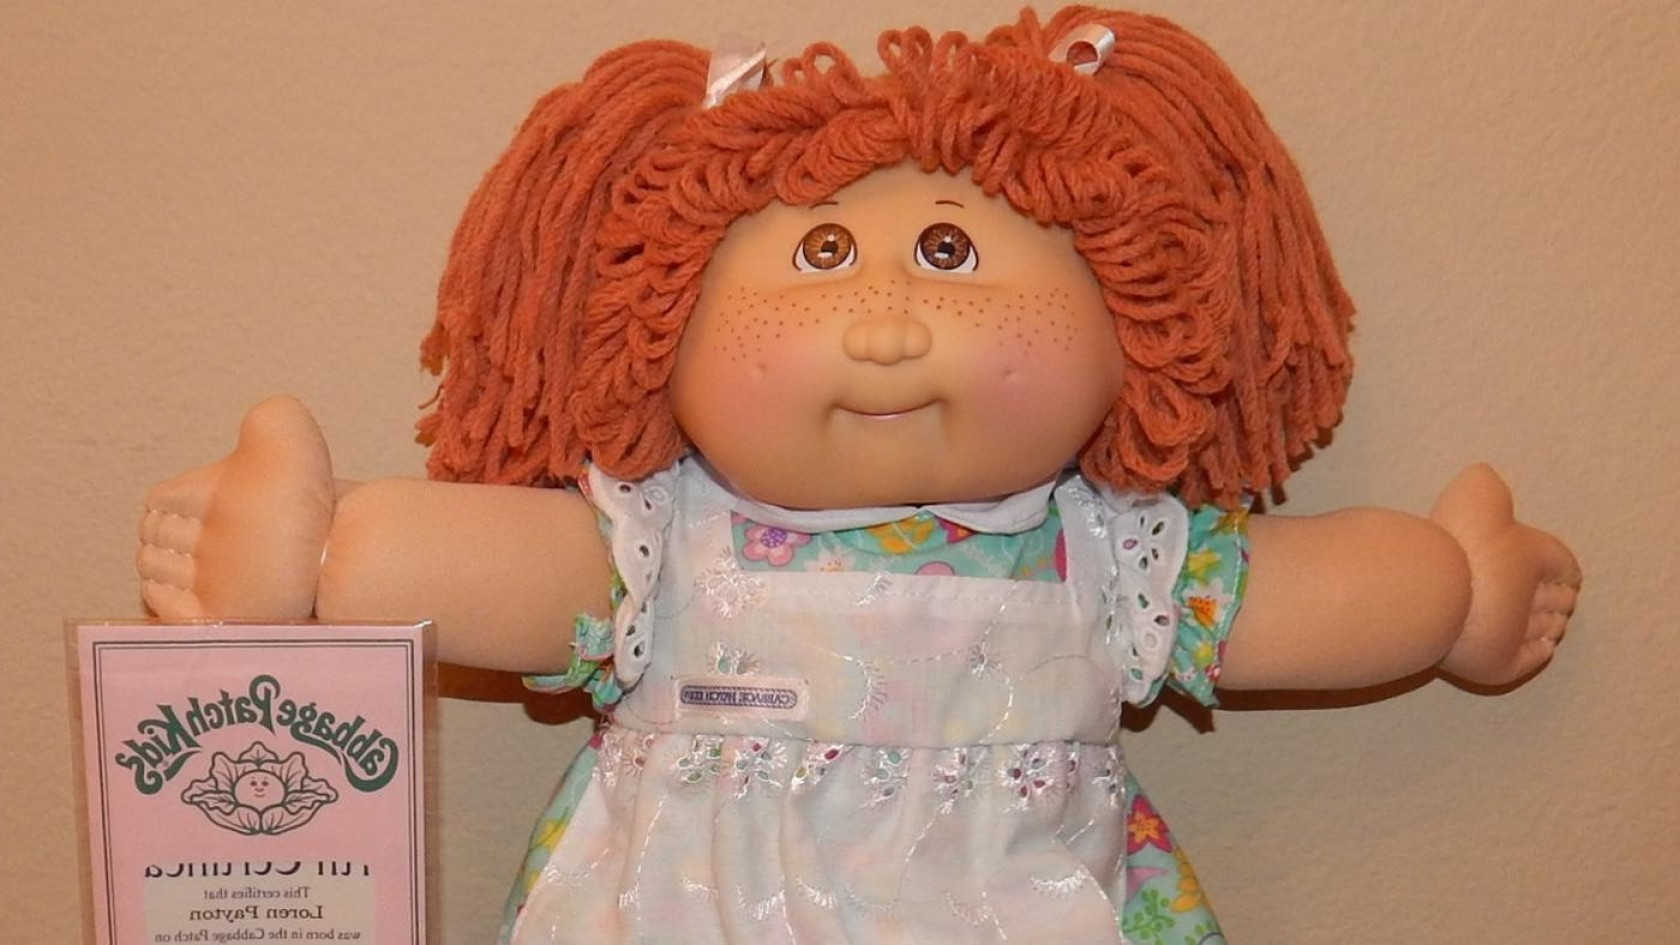 Cabbage Patch Doll Value Inspirational Value original Cabbage Patch Dolls Befbcdebf Of Contemporary 40 Pictures Cabbage Patch Doll Value